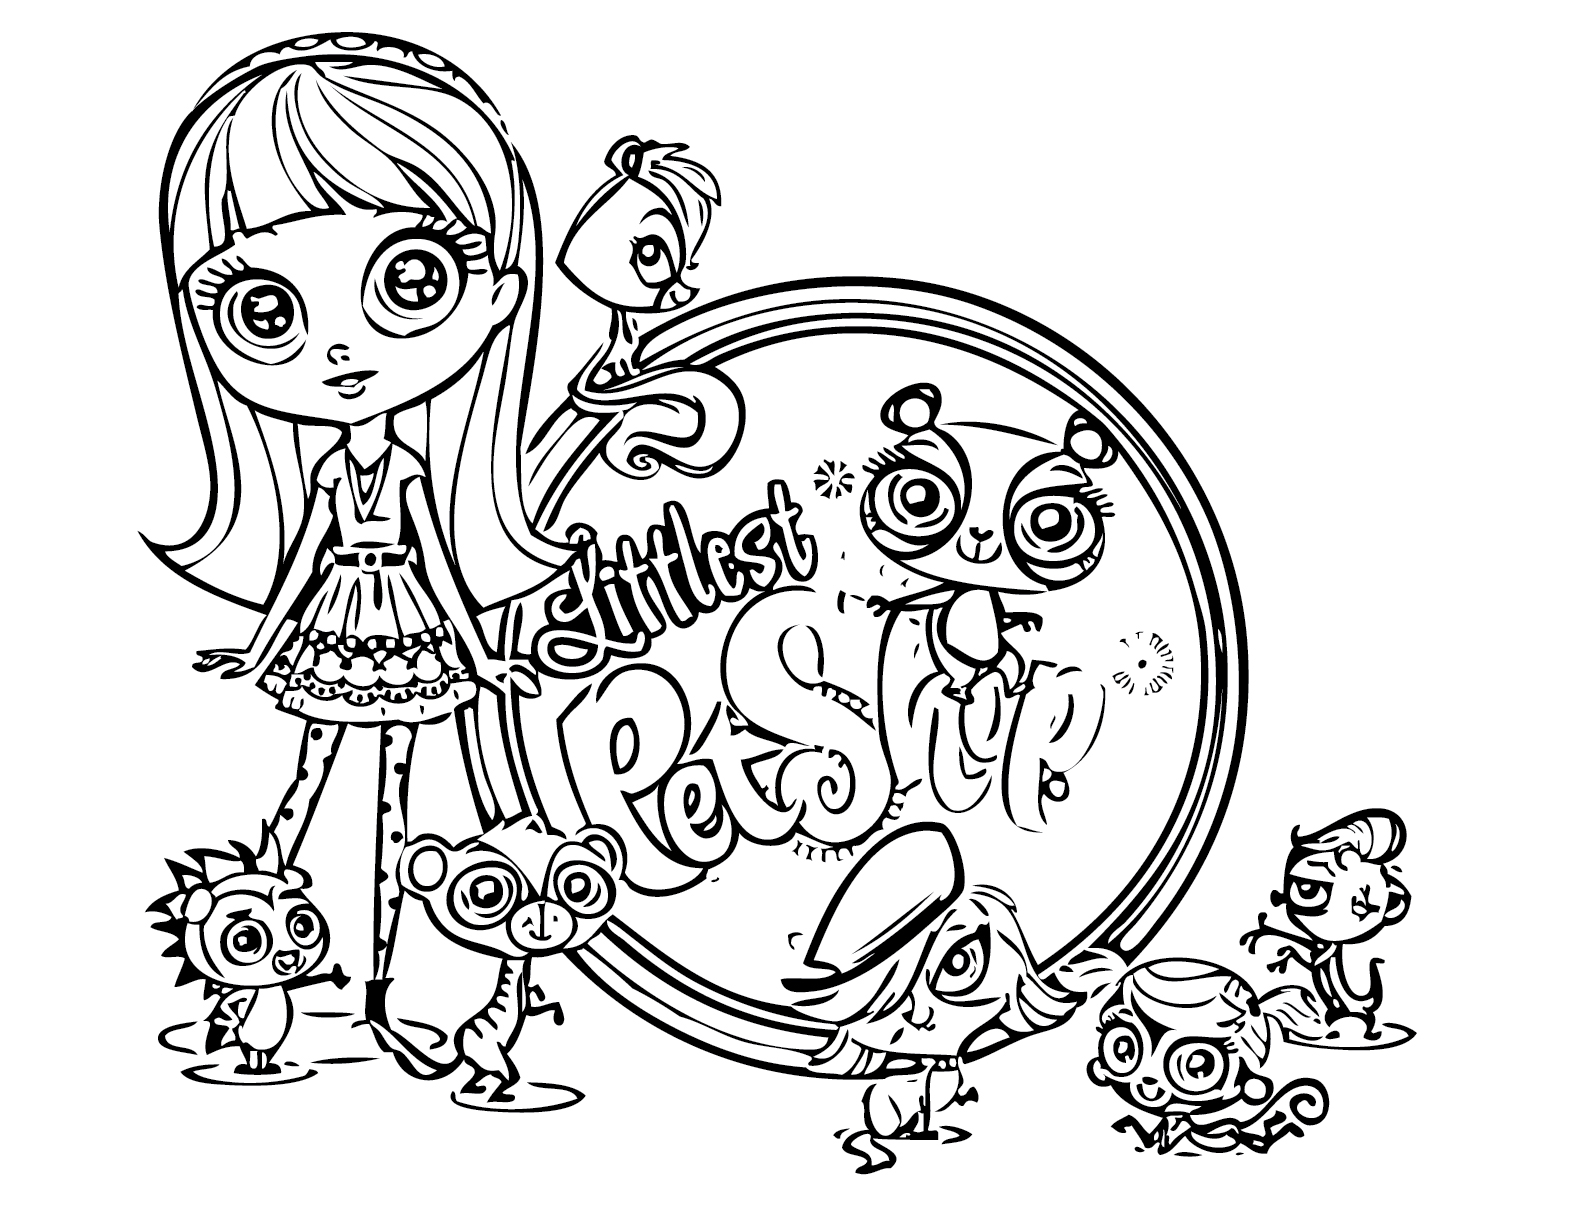 Littlest Pet Shop Coloring Pages Squid Army Littlest Pet Shop Color Pages